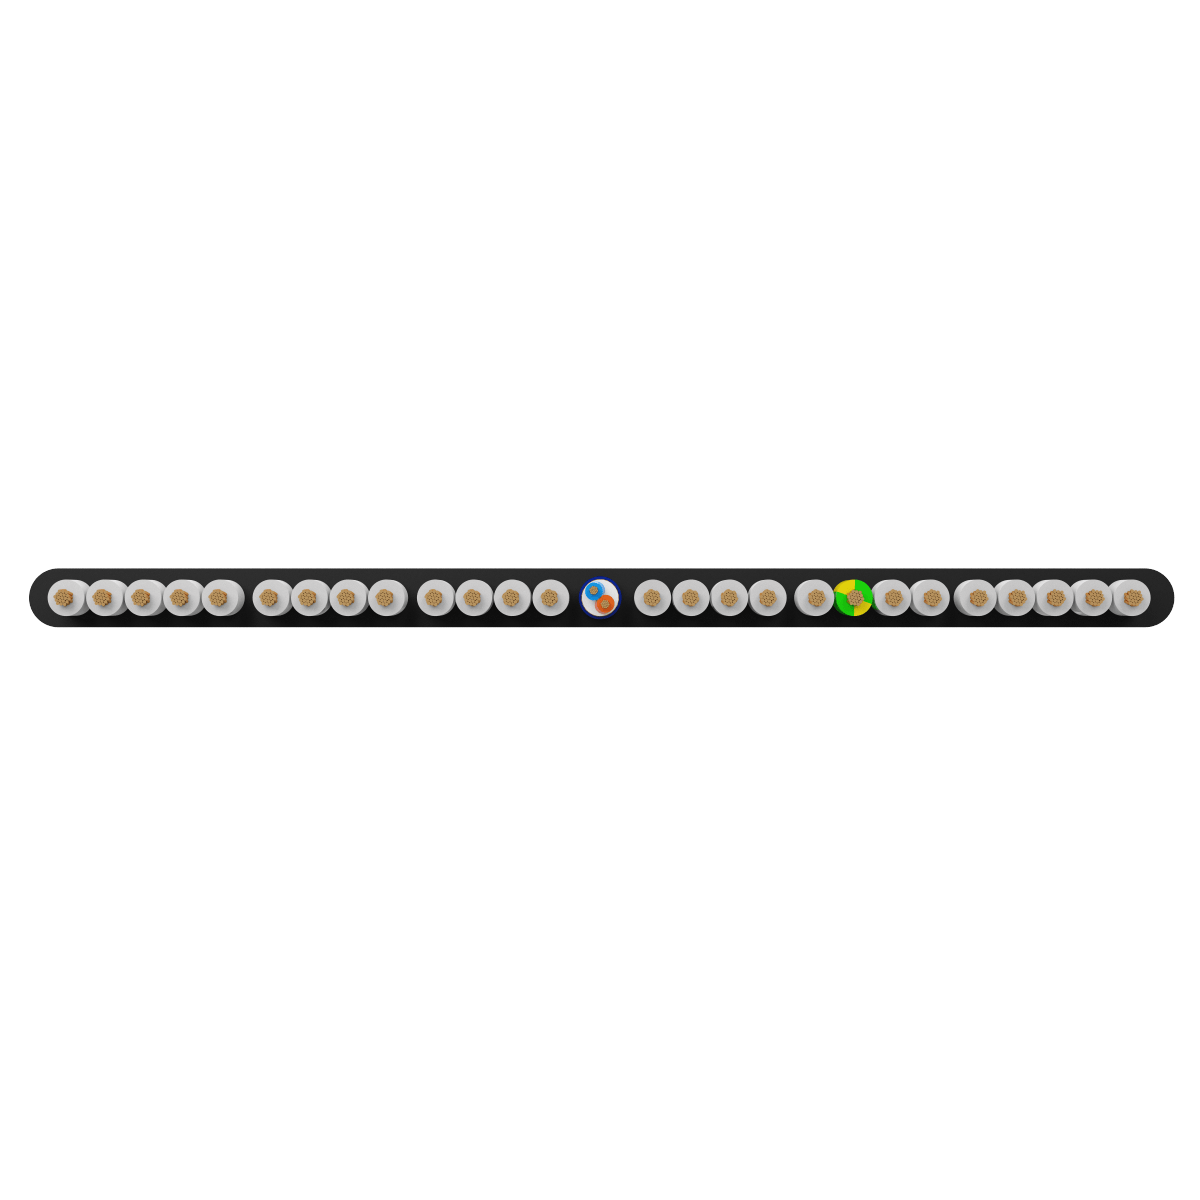 26x0.75 +1Px(2x0.22) mm² H05VVH6-F Foiled Elevator Cable